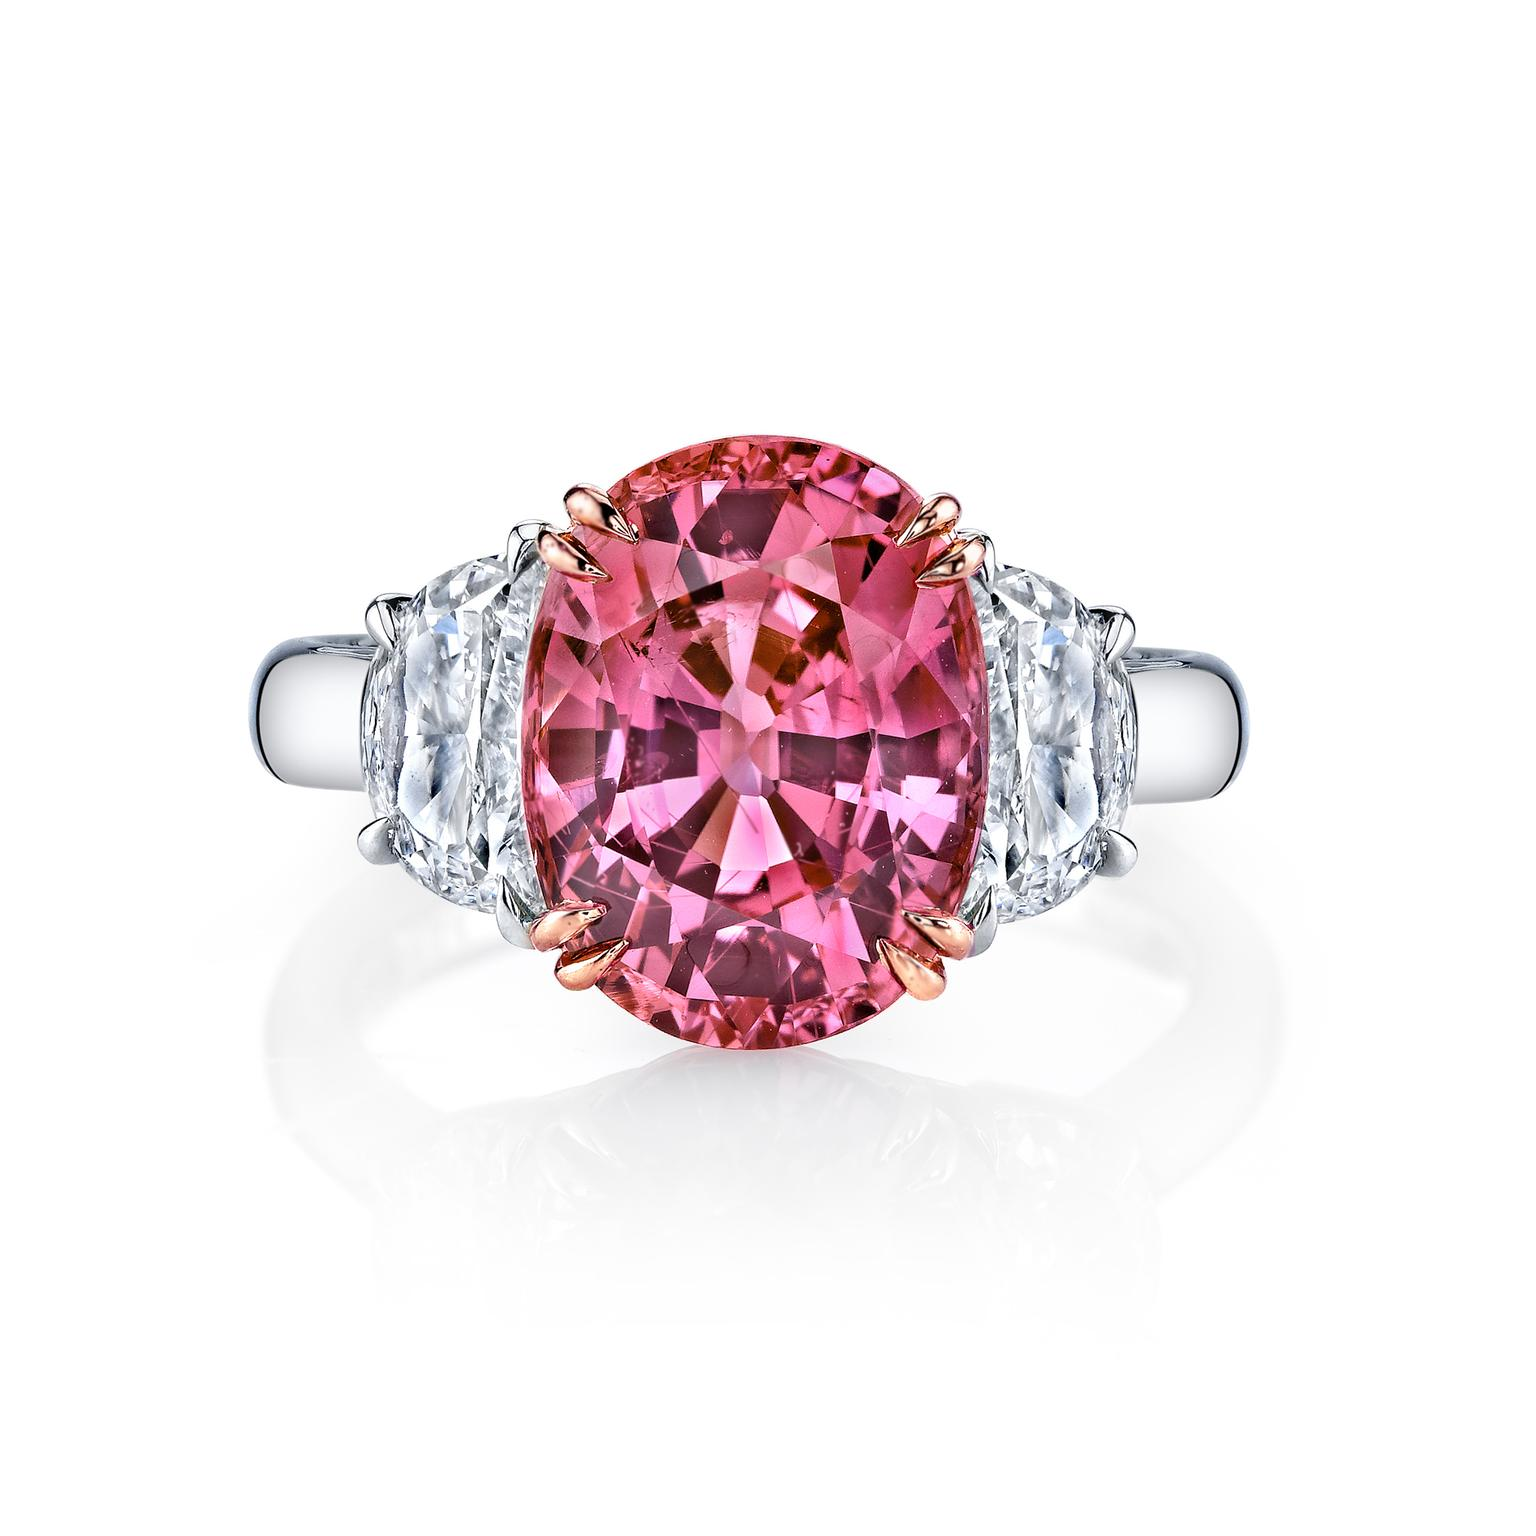 Omi Privé padparadscha ring